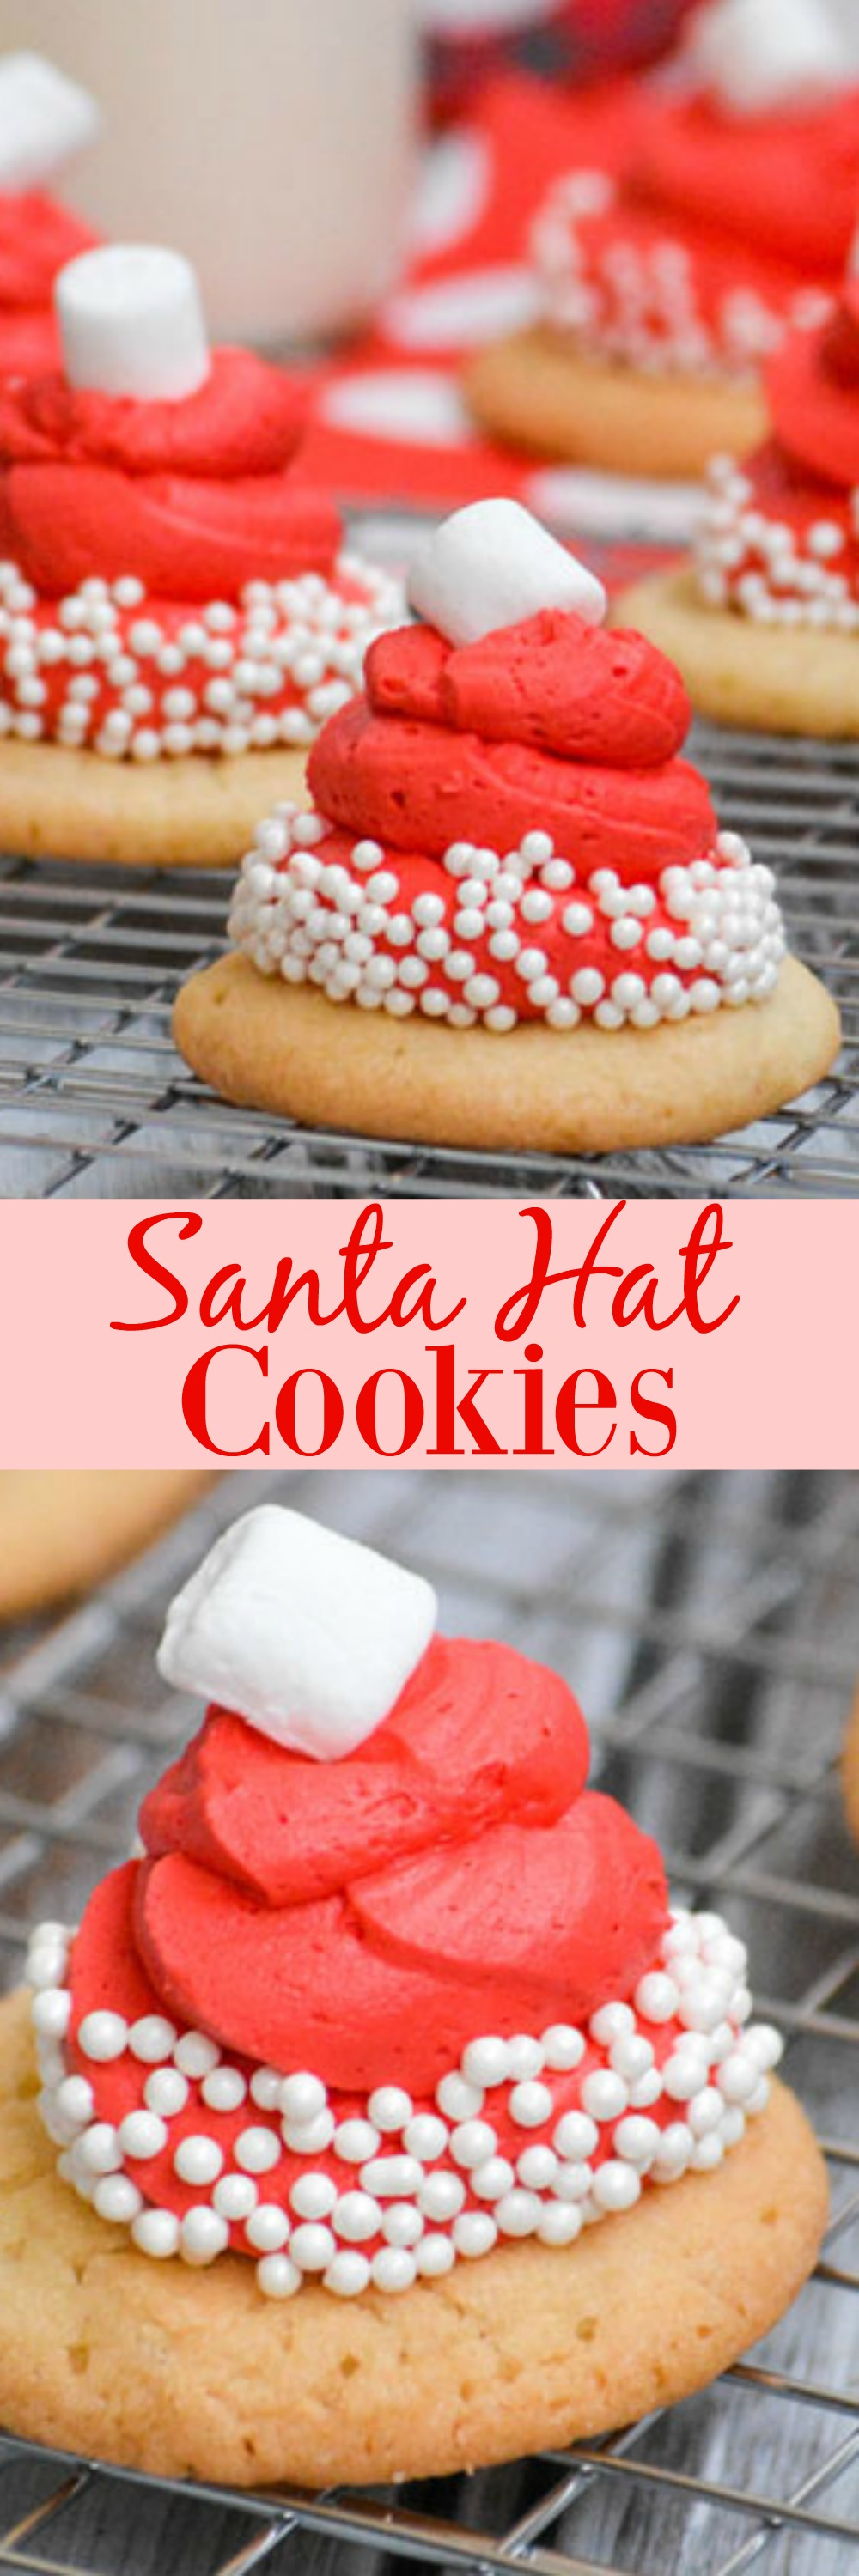 Cookies are synonymous with Christmas and the Big Guy. This year, we're leaving him an extra special snack with these Santa Hat Cookies. They're easy, they're soooo yummy, and they're perfect for getting kids in the kitchen and excited about a festive dessert.